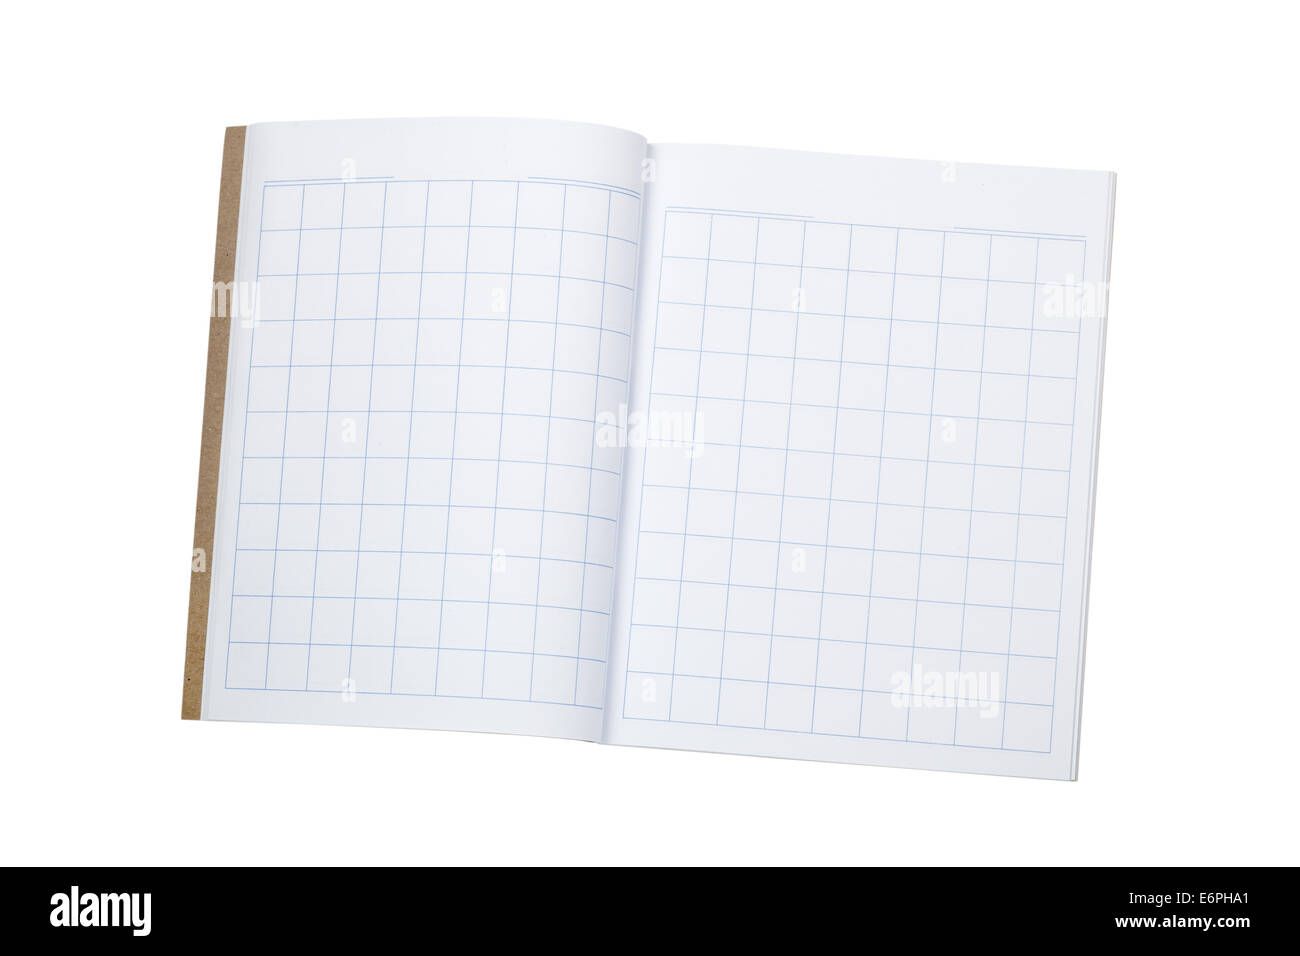 Blank workbook to practice writing chinese characters isolated on ...